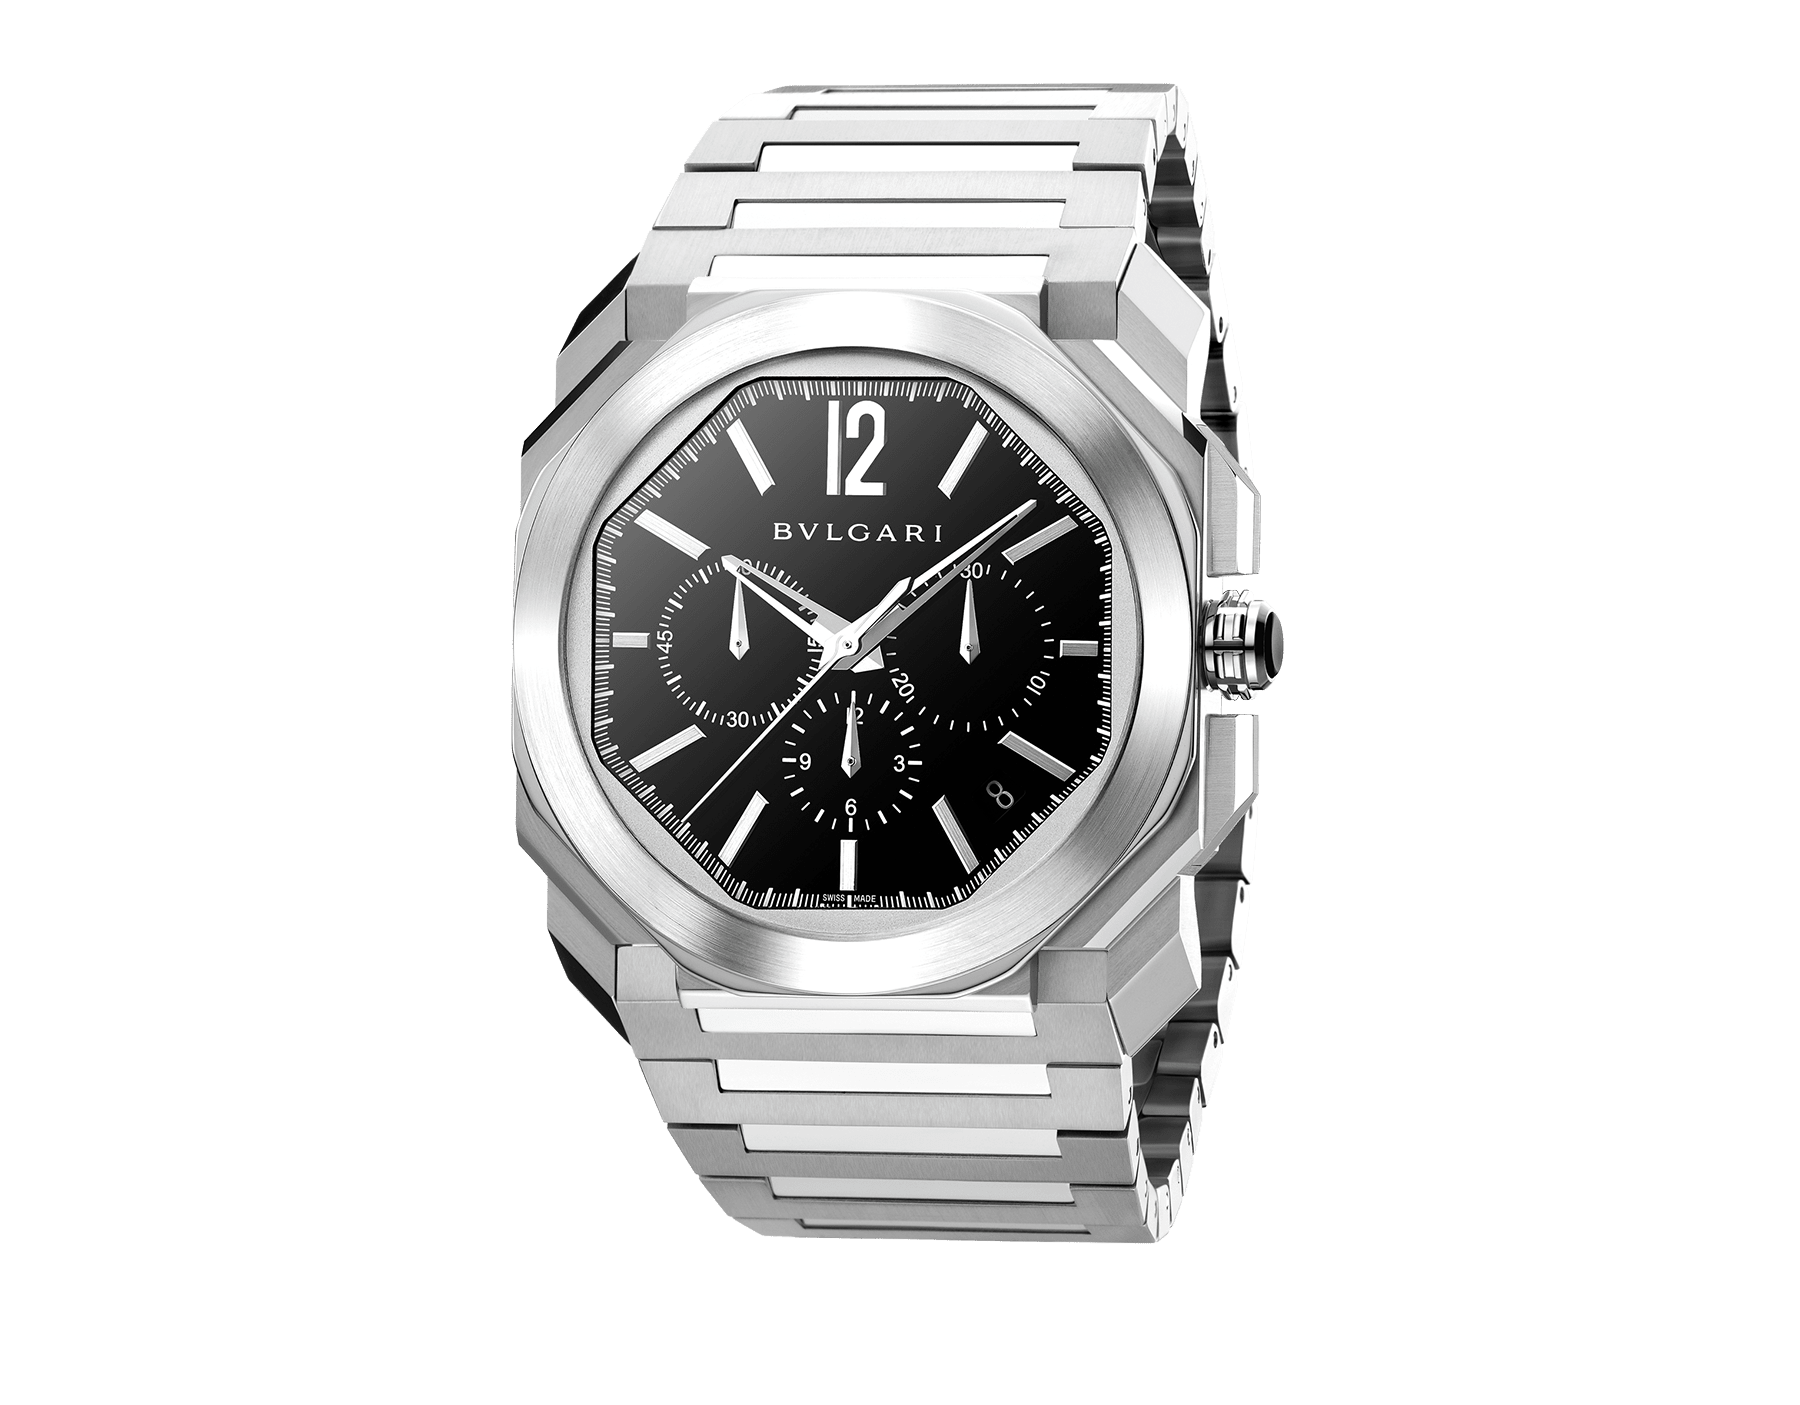 Octo watch with mechanical manufacture movement, high-frequency chronograph, automatic winding and date, stainless steel case and bracelet, black lacquered dial. 102116 image 1